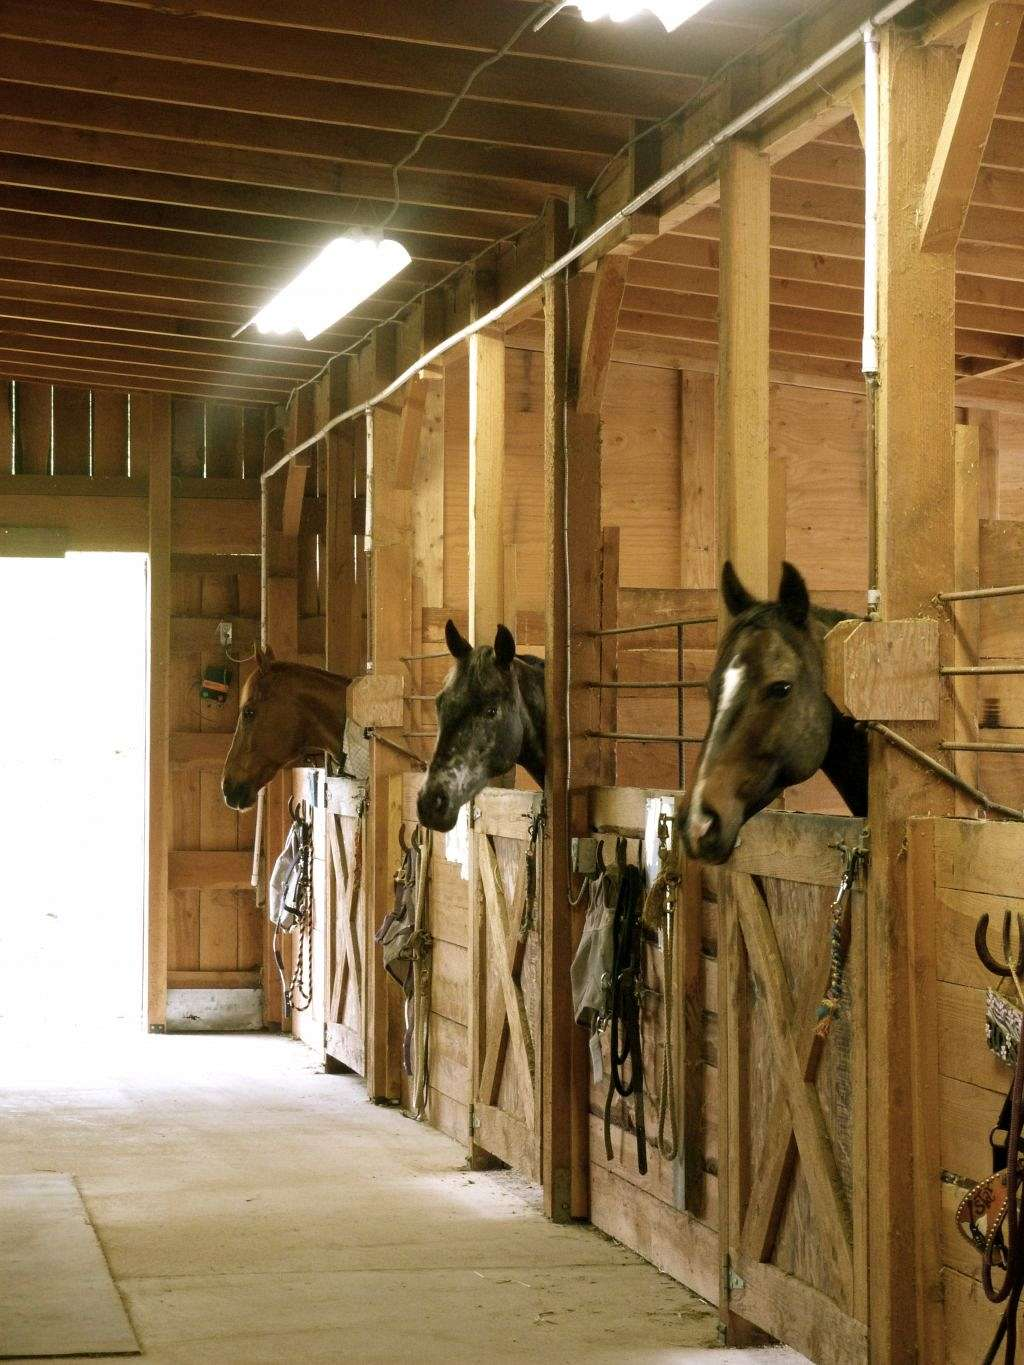 Anderson Snowy Mountain Stables On Equinenow